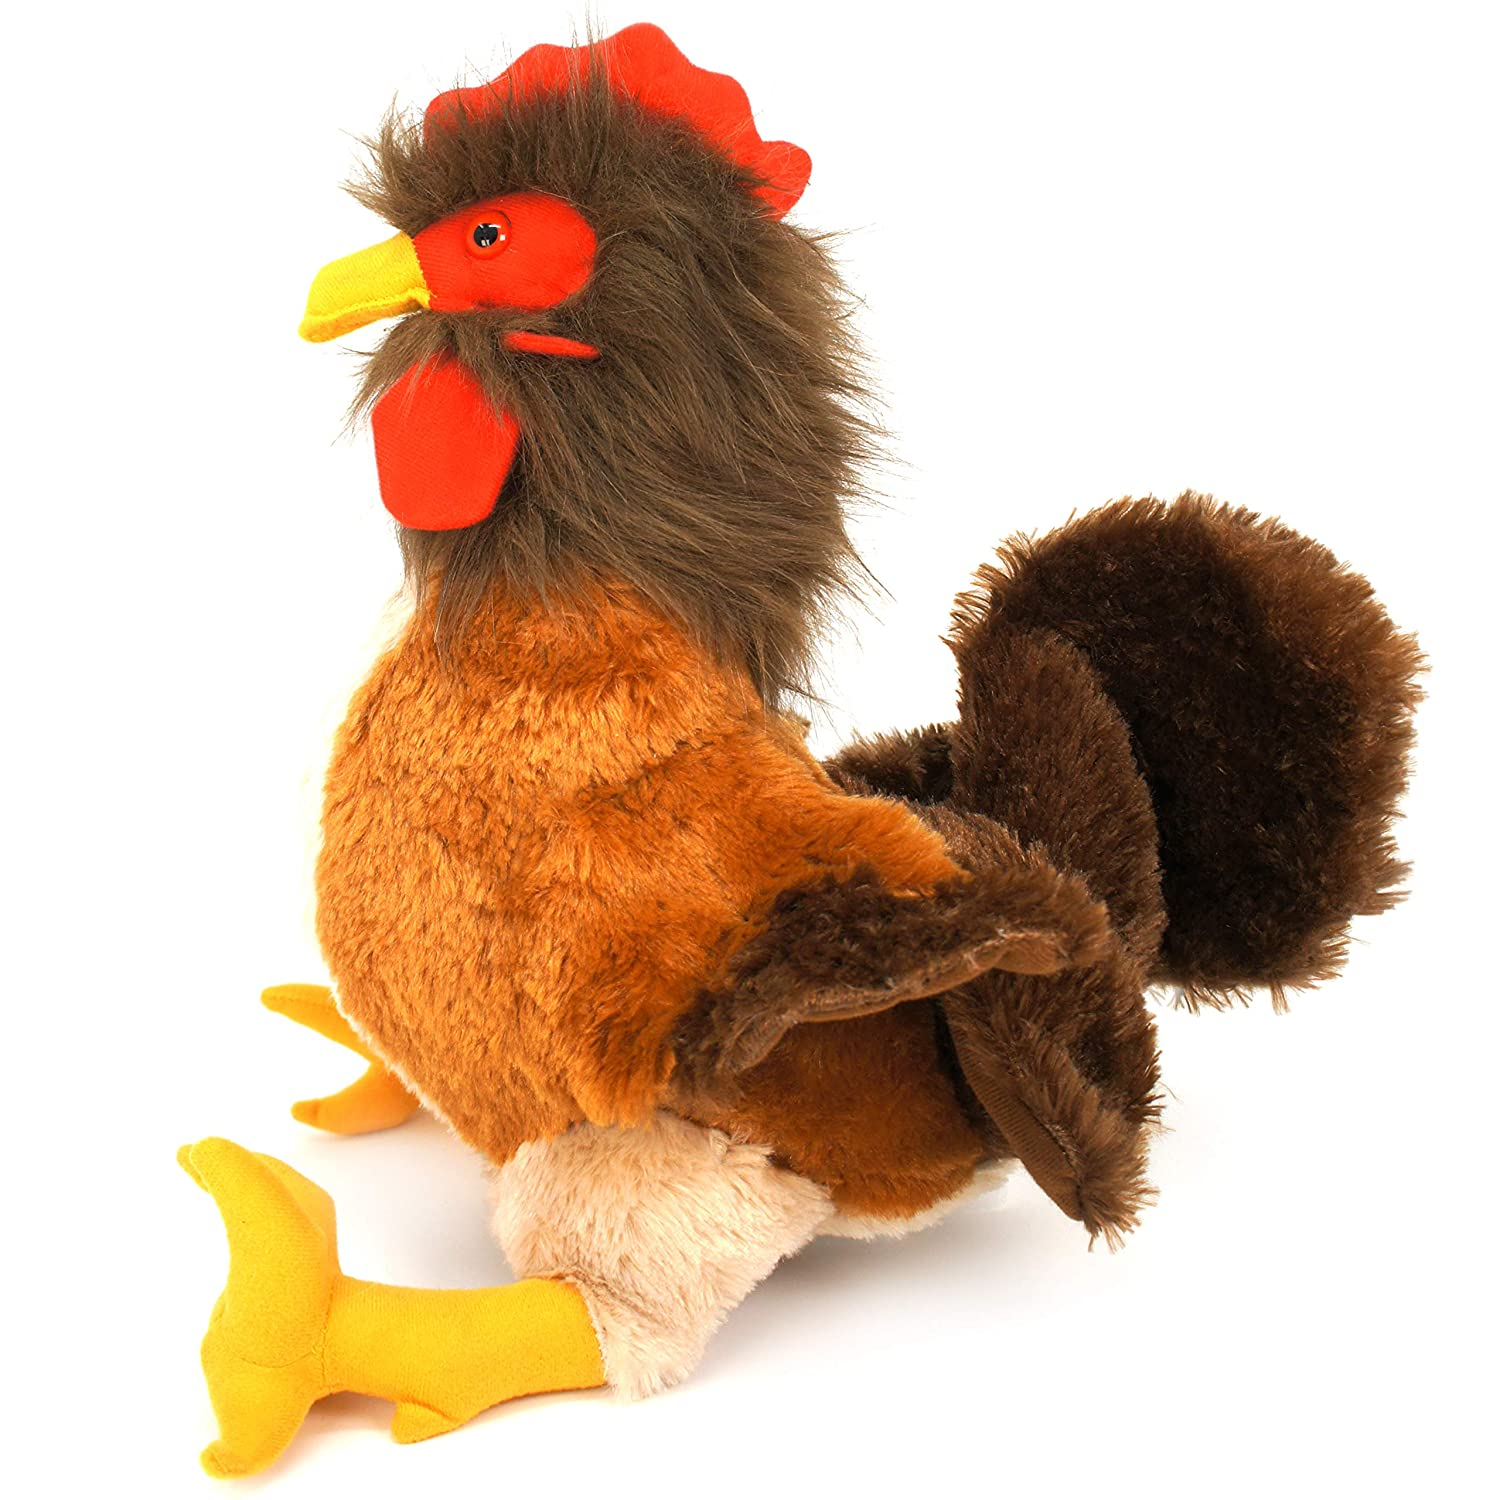 by Tiger Tale Toys 19 Inch Stuffed Animal Plush VIAHART Ranger The Rooster